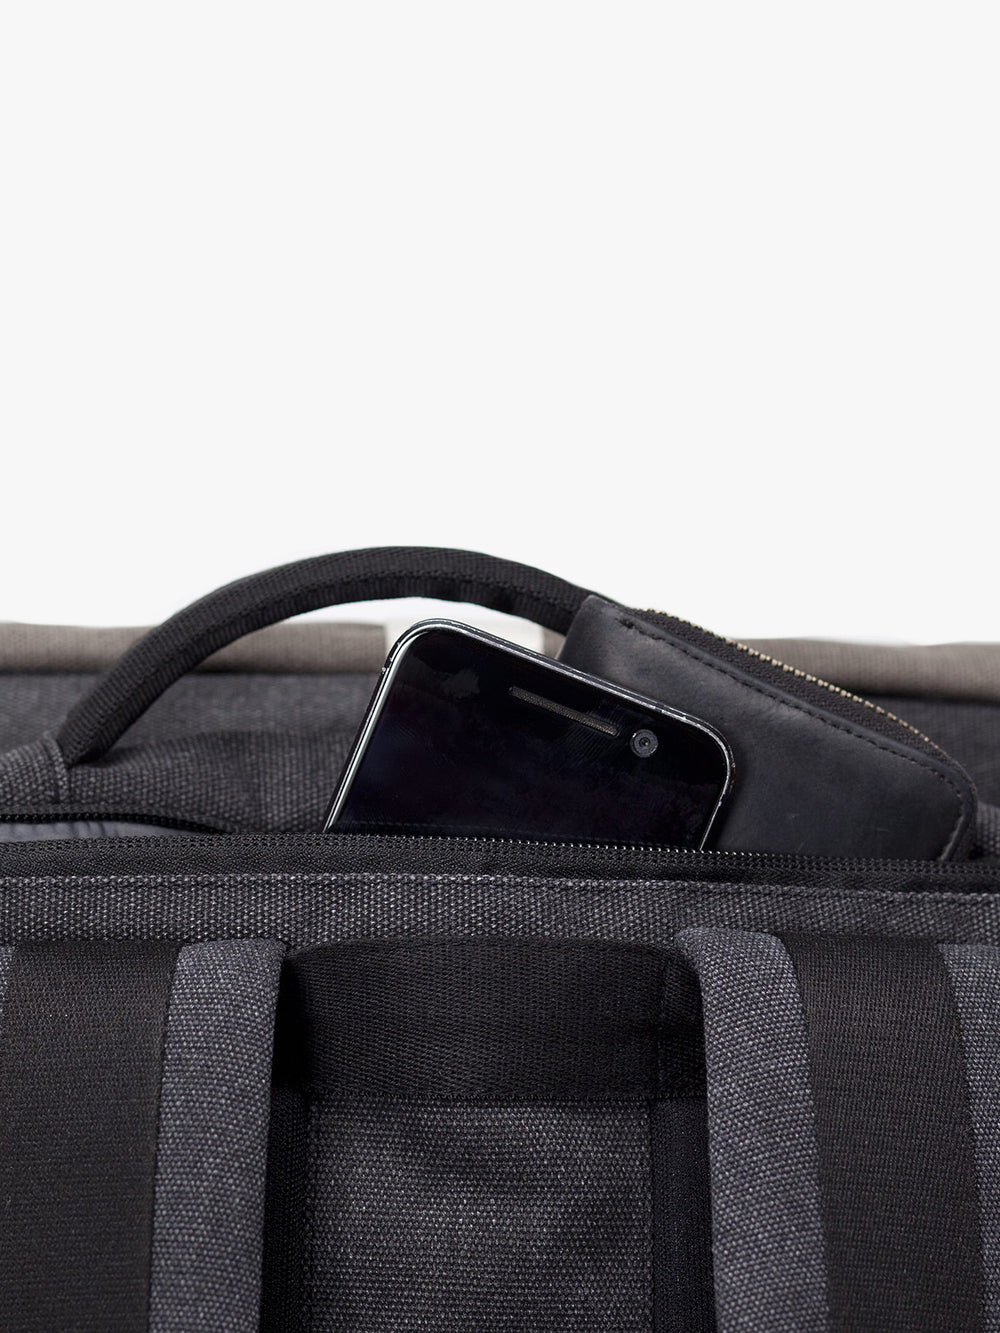 Hajo Pro backpack back zipped pocket for a safe keeping of phone and wallet